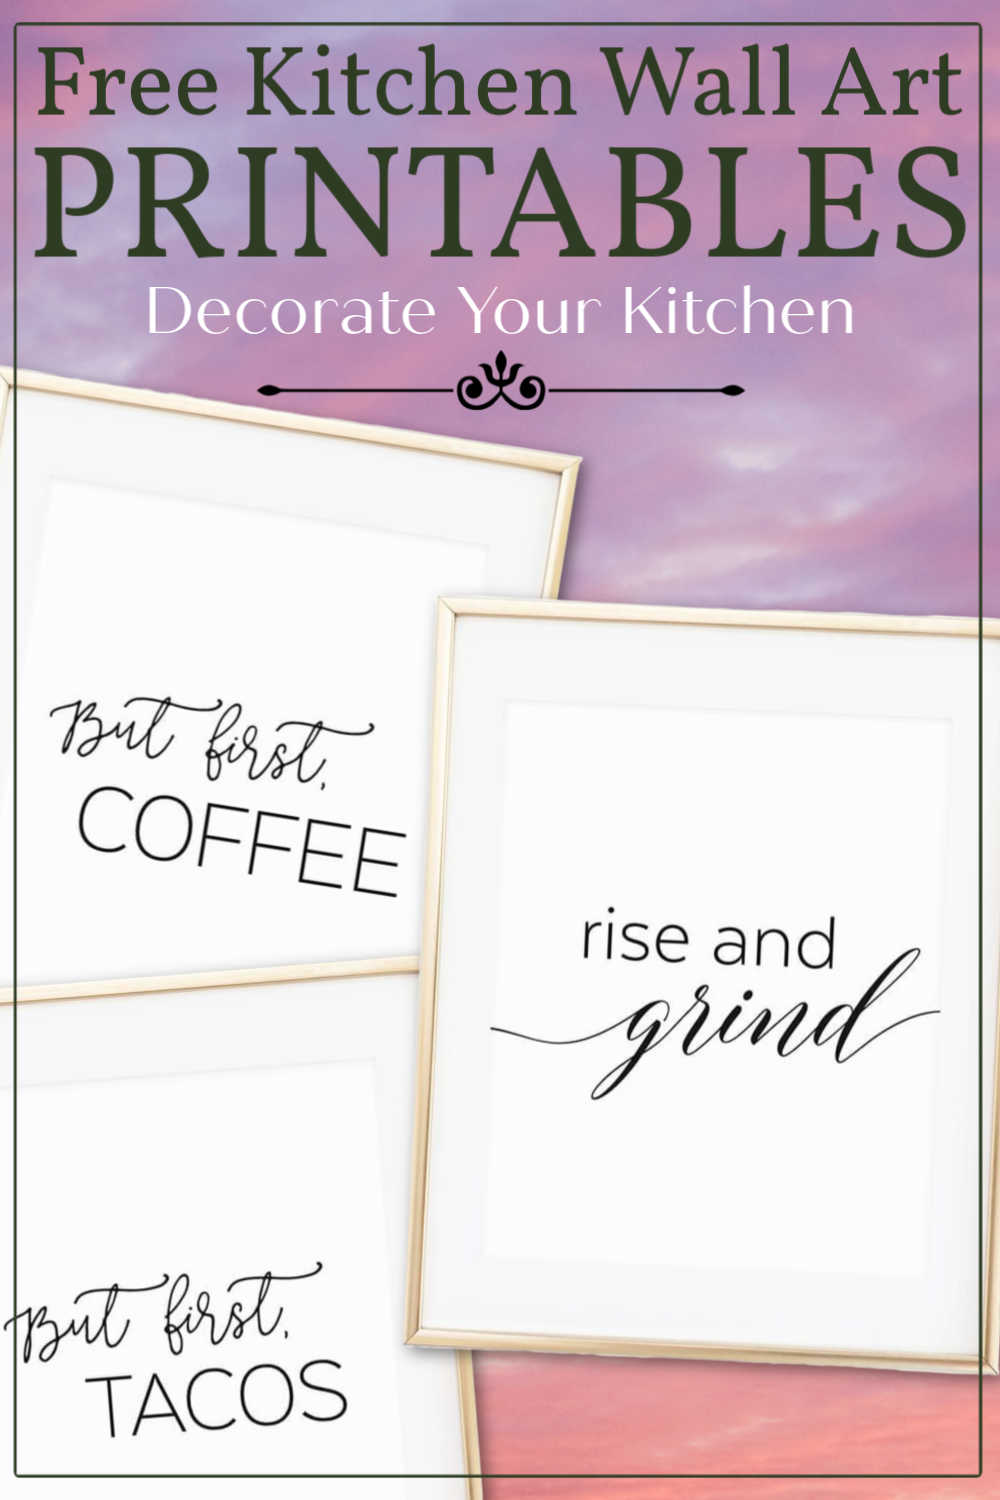 Adorable Black And White Free Printable Kitchen Wall Art